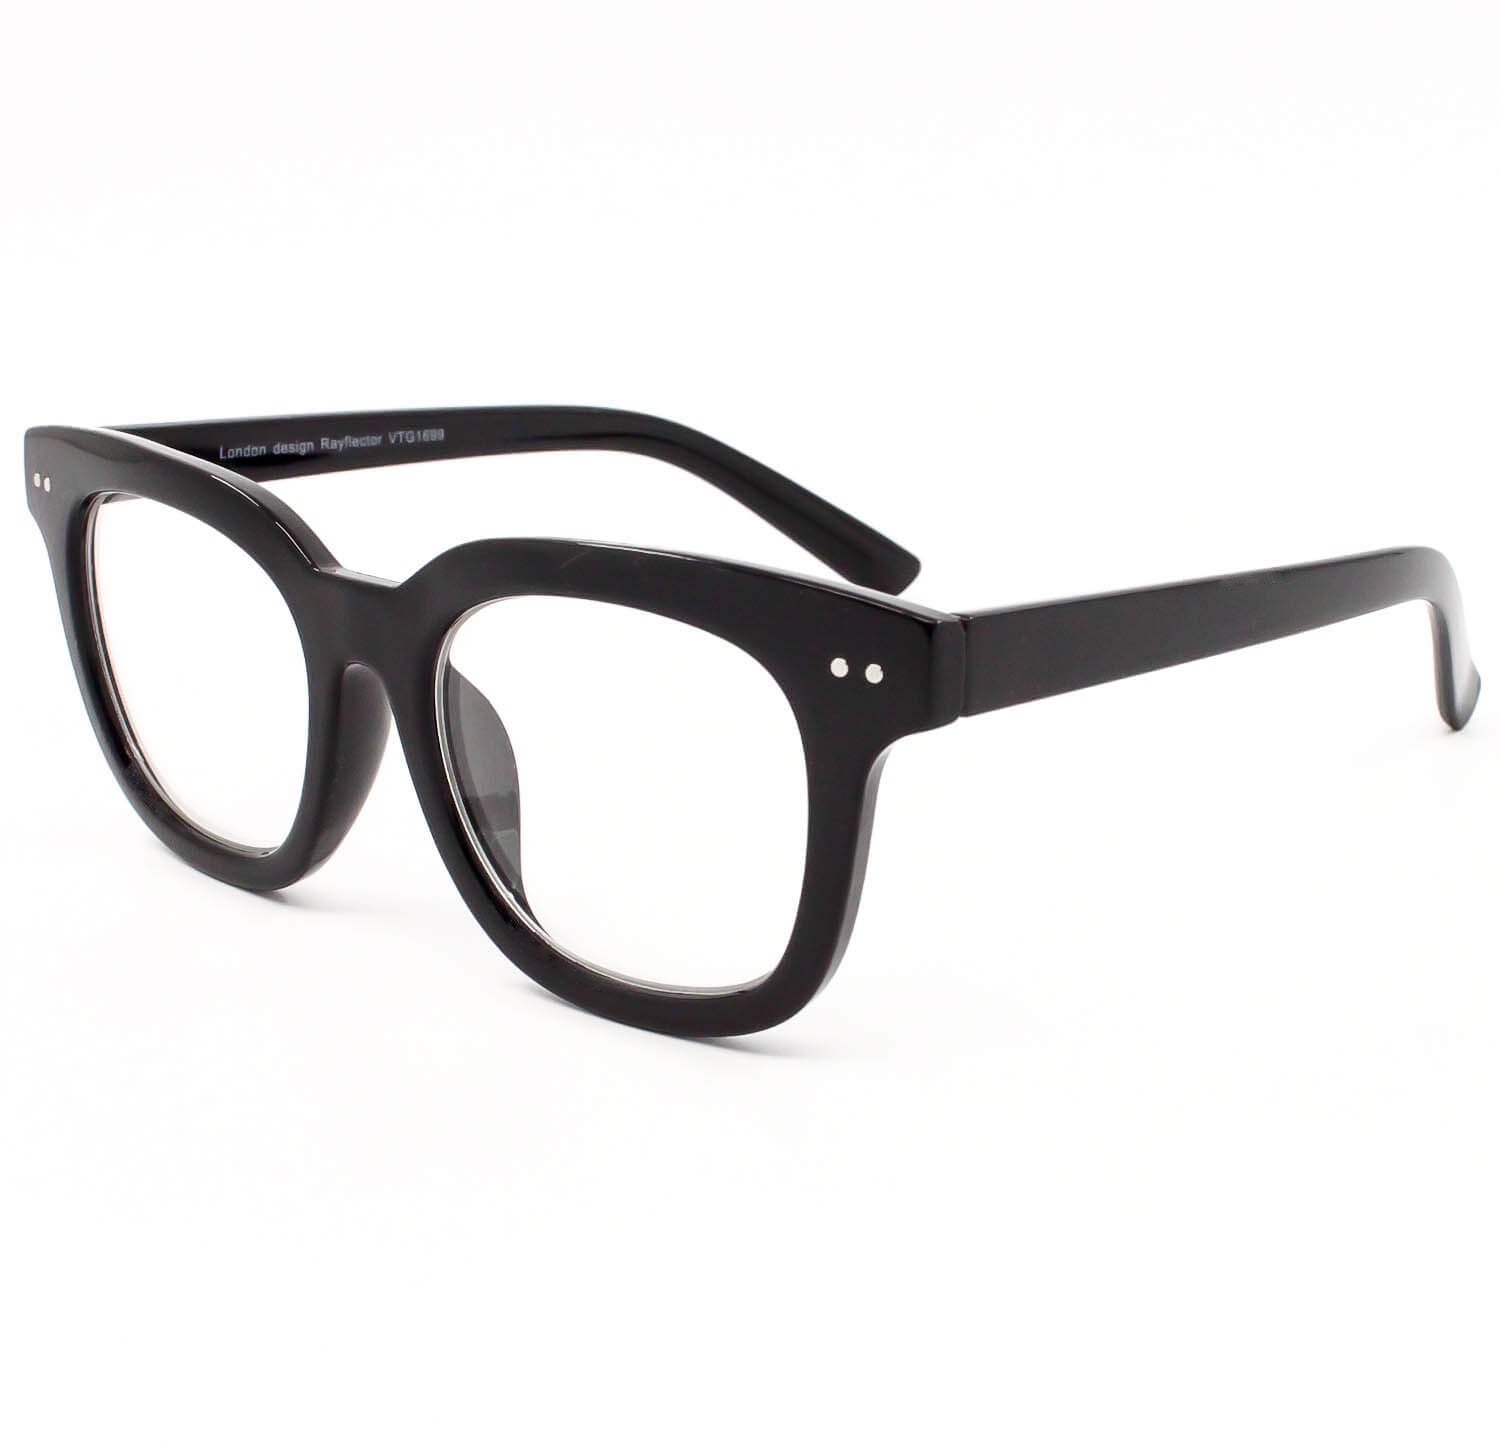 1d3abbbceff Thick Frame Bold Square Old School Hip Hop Clear Lens Glasses - Sunglassinn